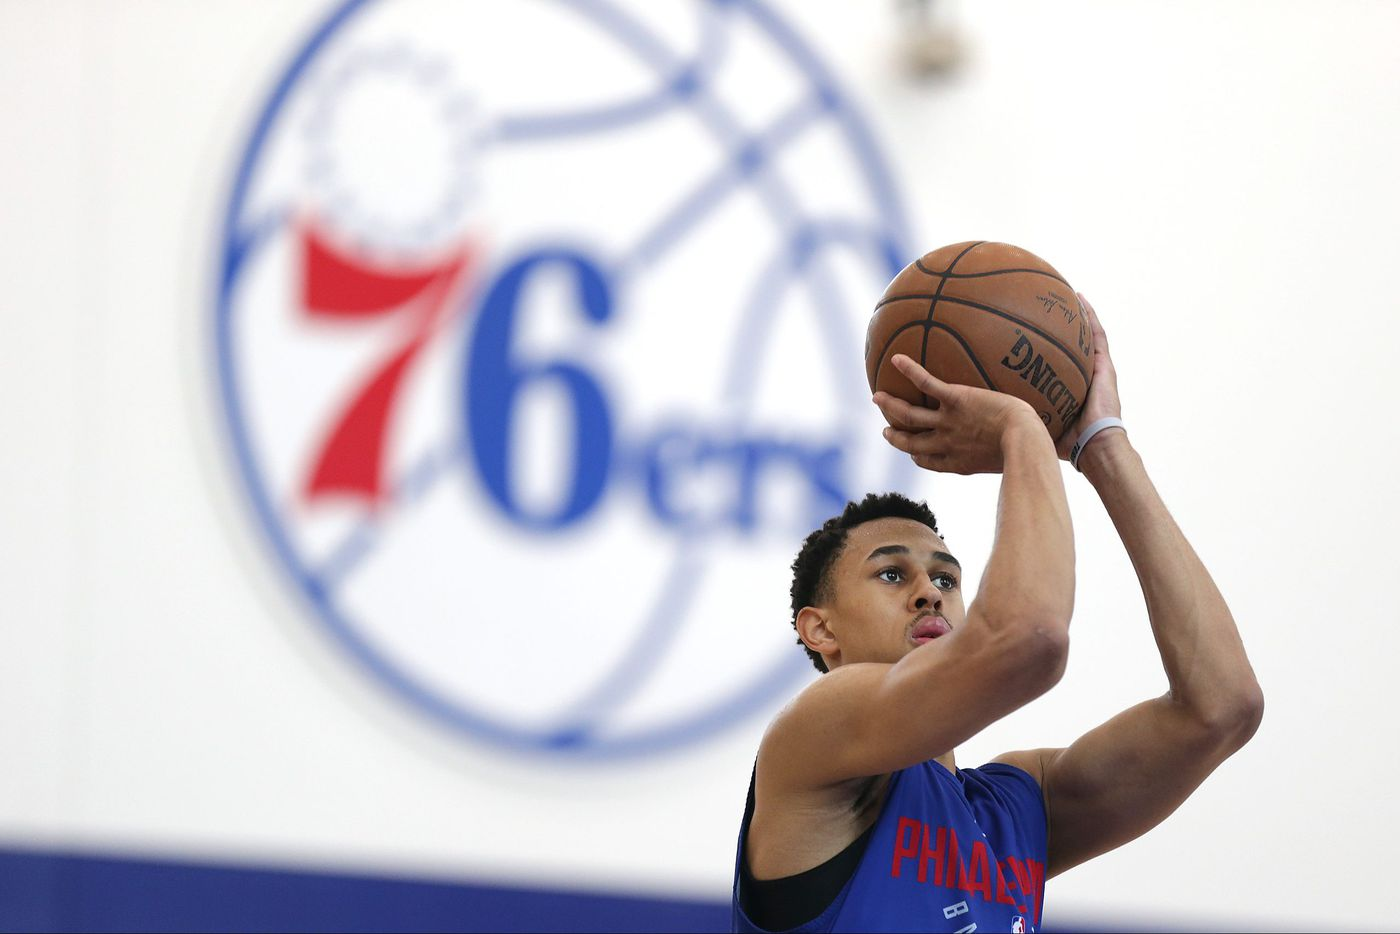 Sixers' summer league preview: Which players could stand out in Las Vegas?